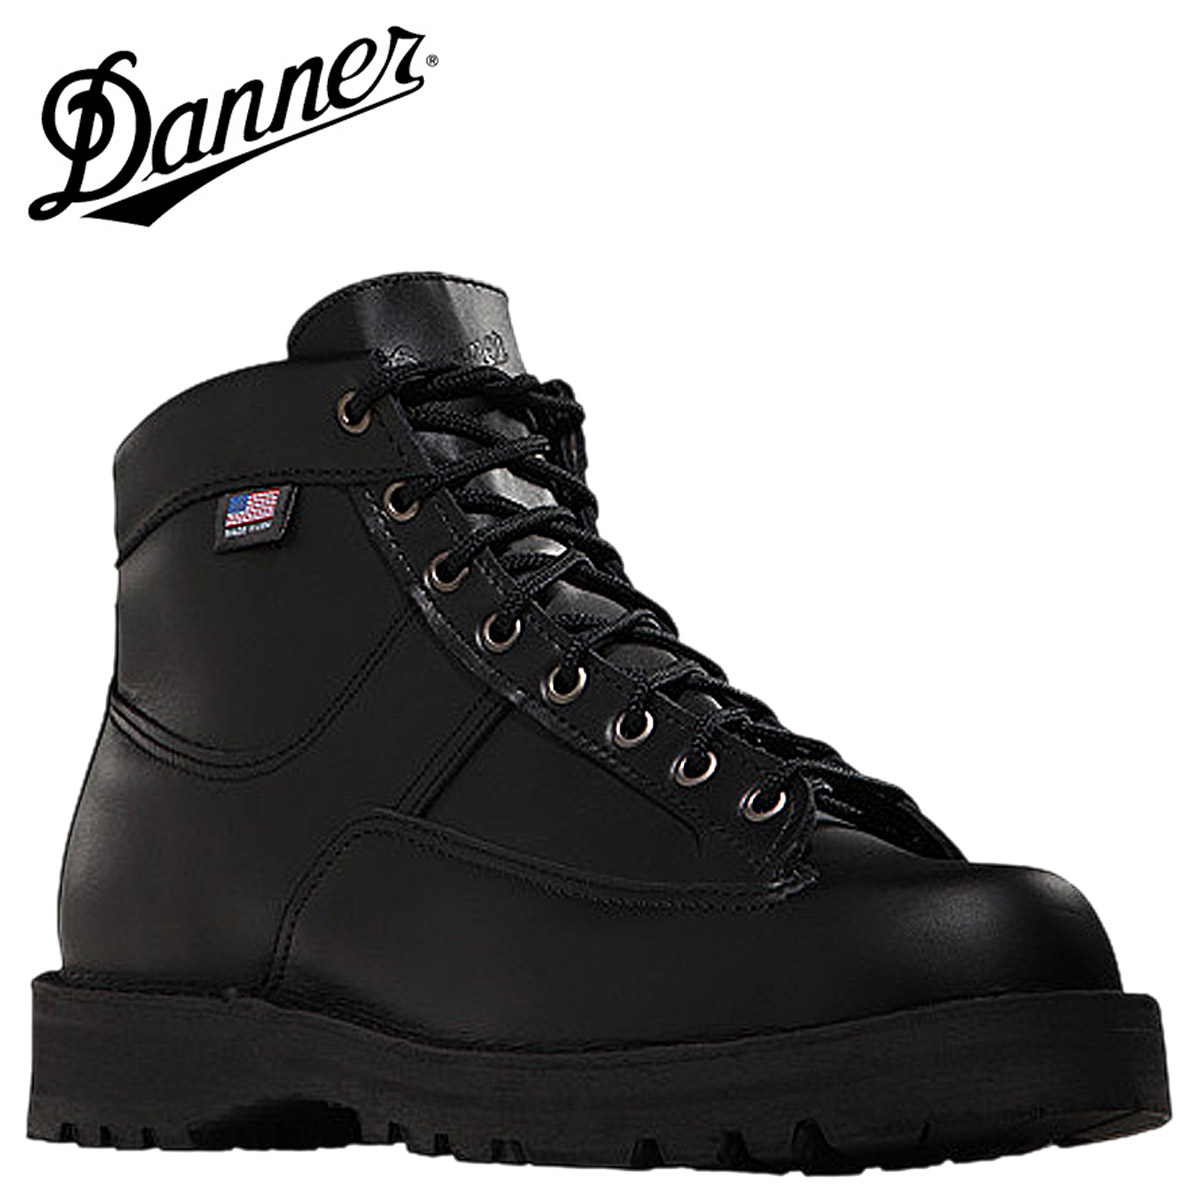 Black Danner Boots - Cr Boot